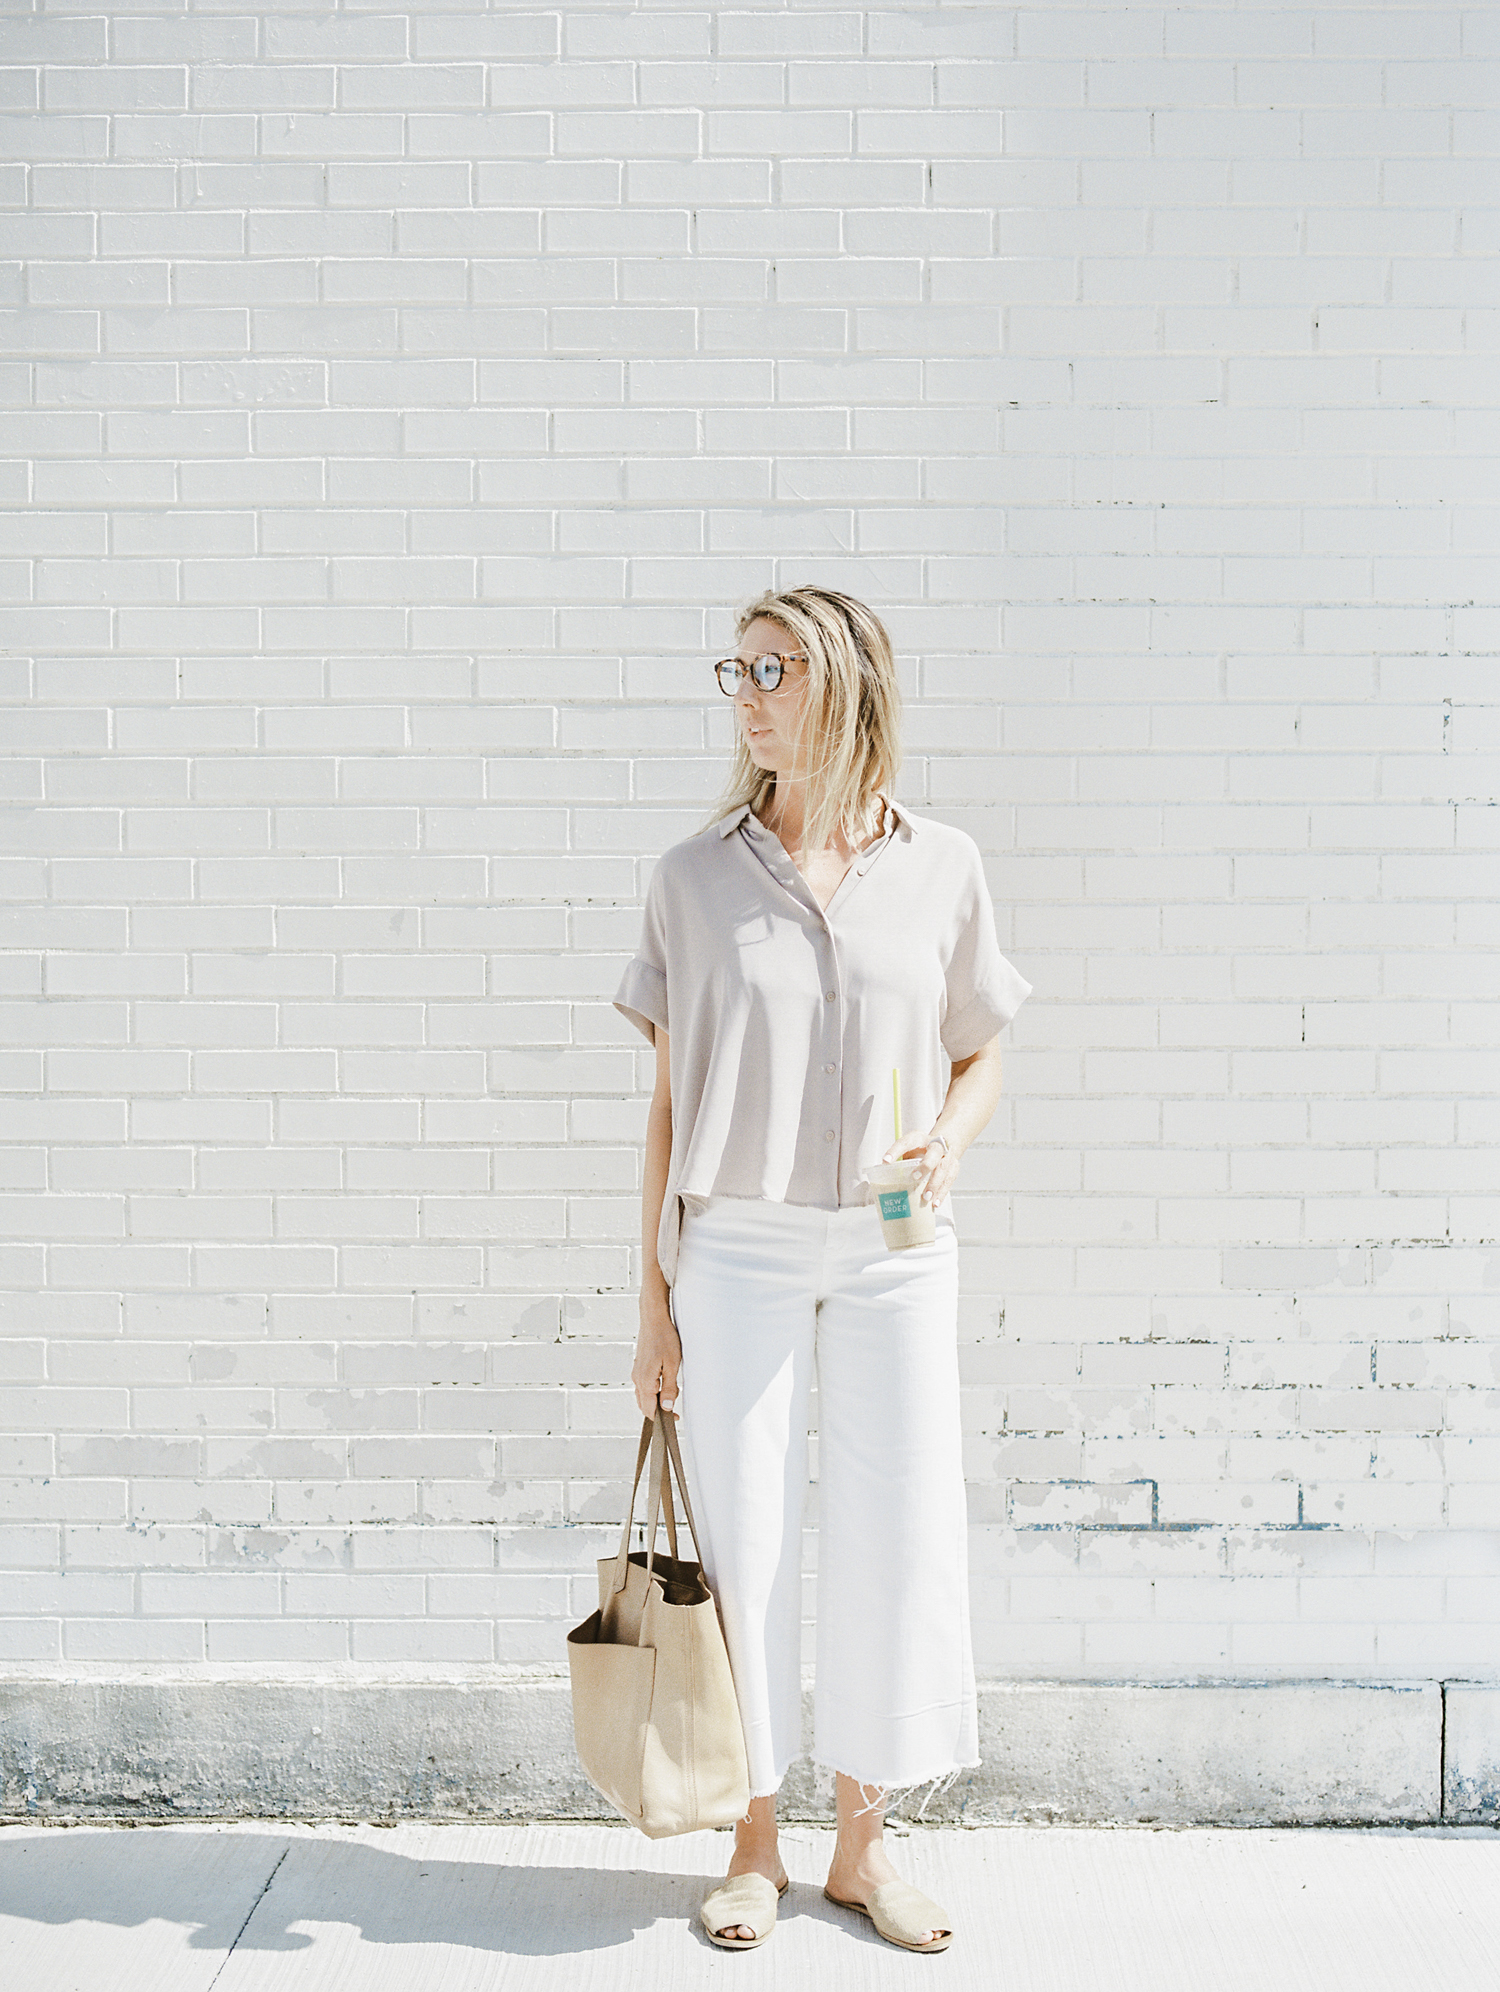 A female designer with New Order Coffee and a Madewell bag pauses in front of a white distressed brick building during her brand photos on film in Detroit, Michigan